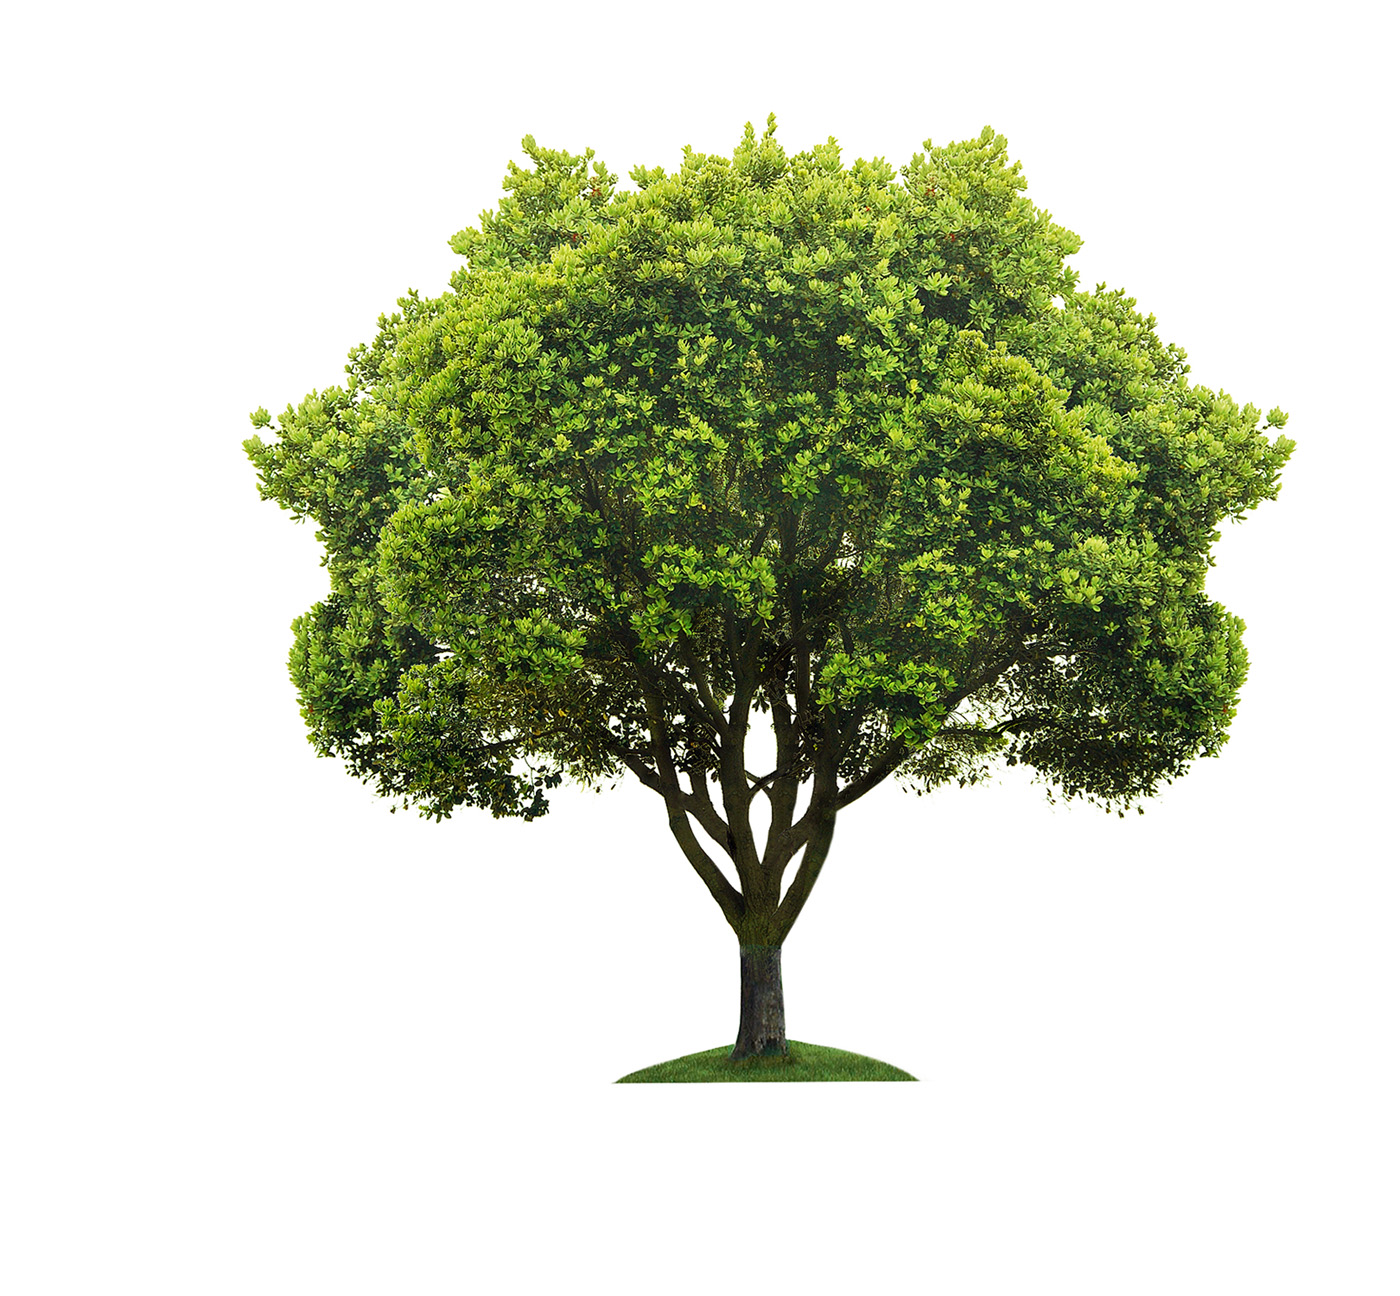 The tree for my borough campaign has been extended eco quartier ndg - Tree images free download ...